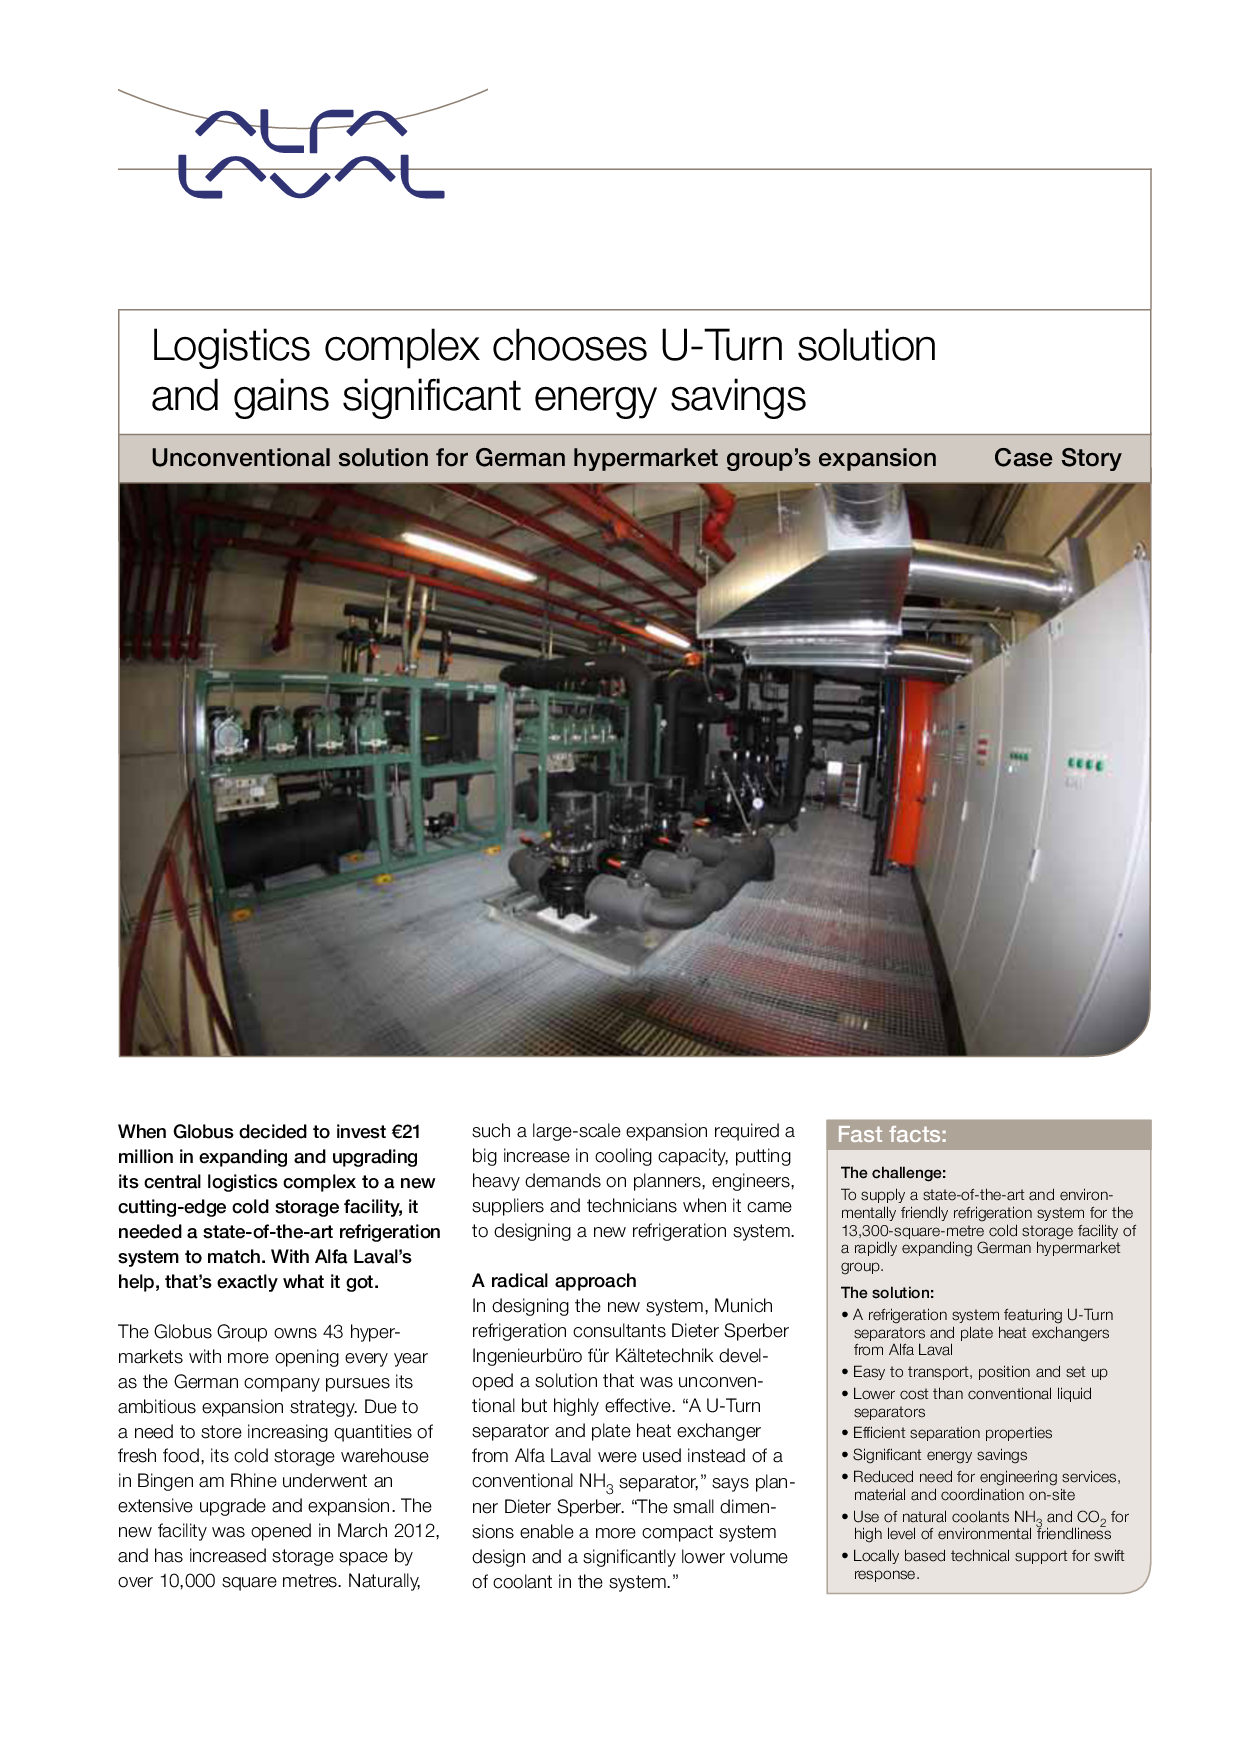 Logistics complex chooses U-Turn solution and gains significant energy savings